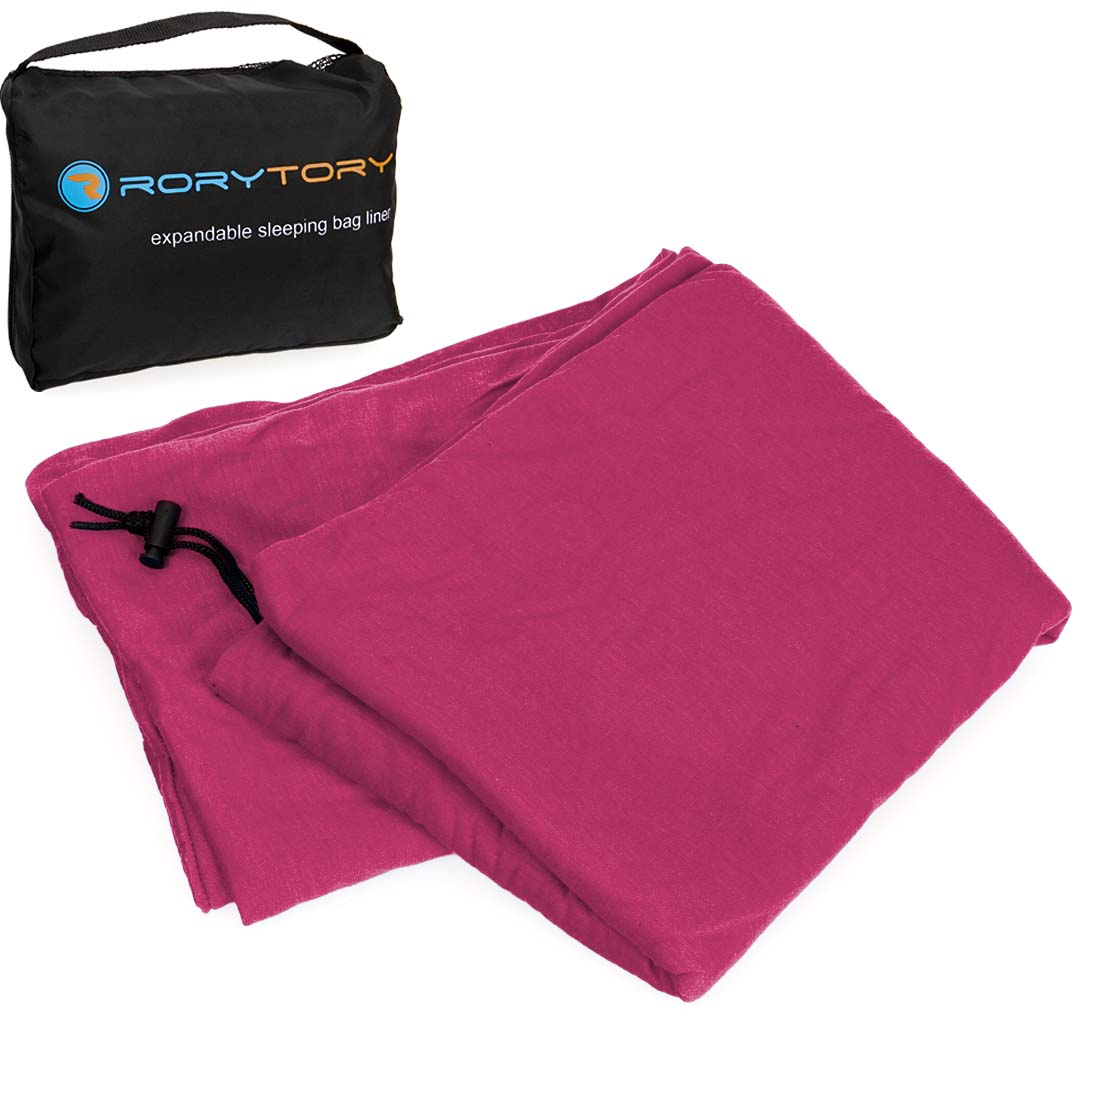 RoryTory Various Color Antimicrobial Protected Expandable Sleeping Bag Liner